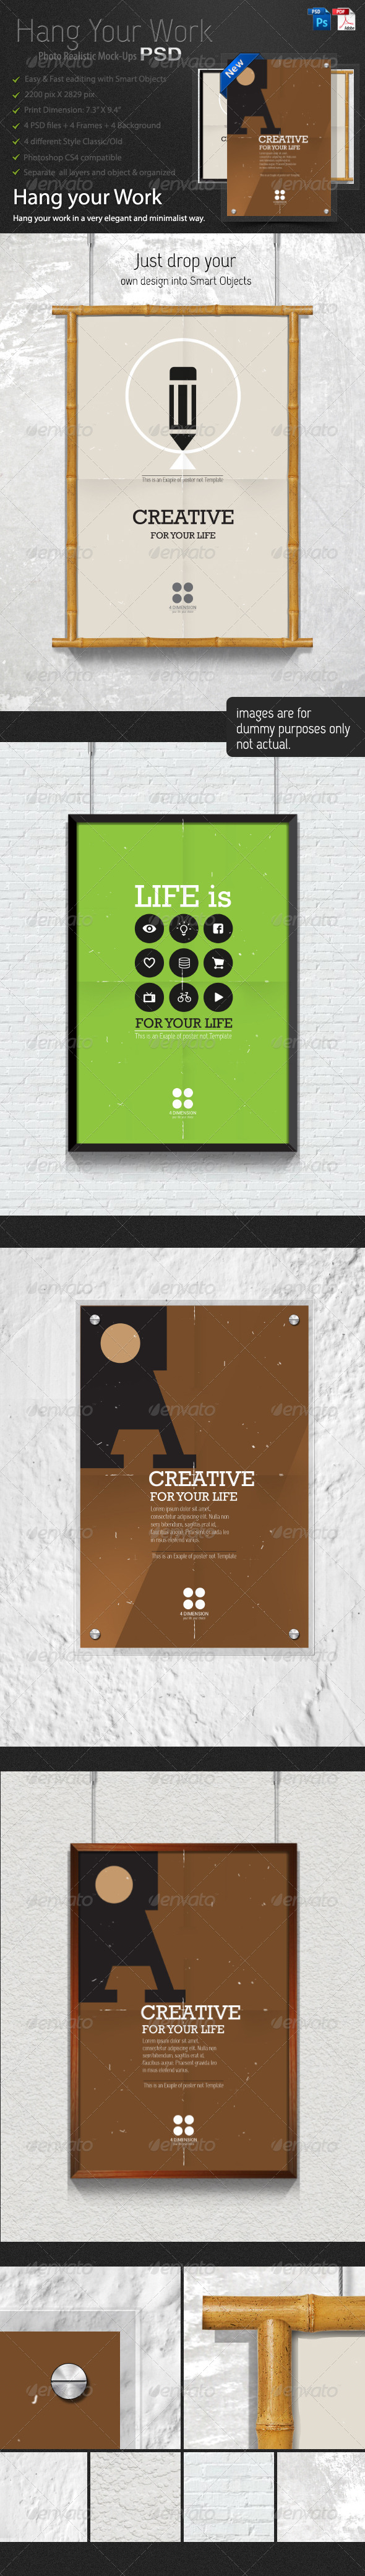 GraphicRiver Hang Your Work 6259890